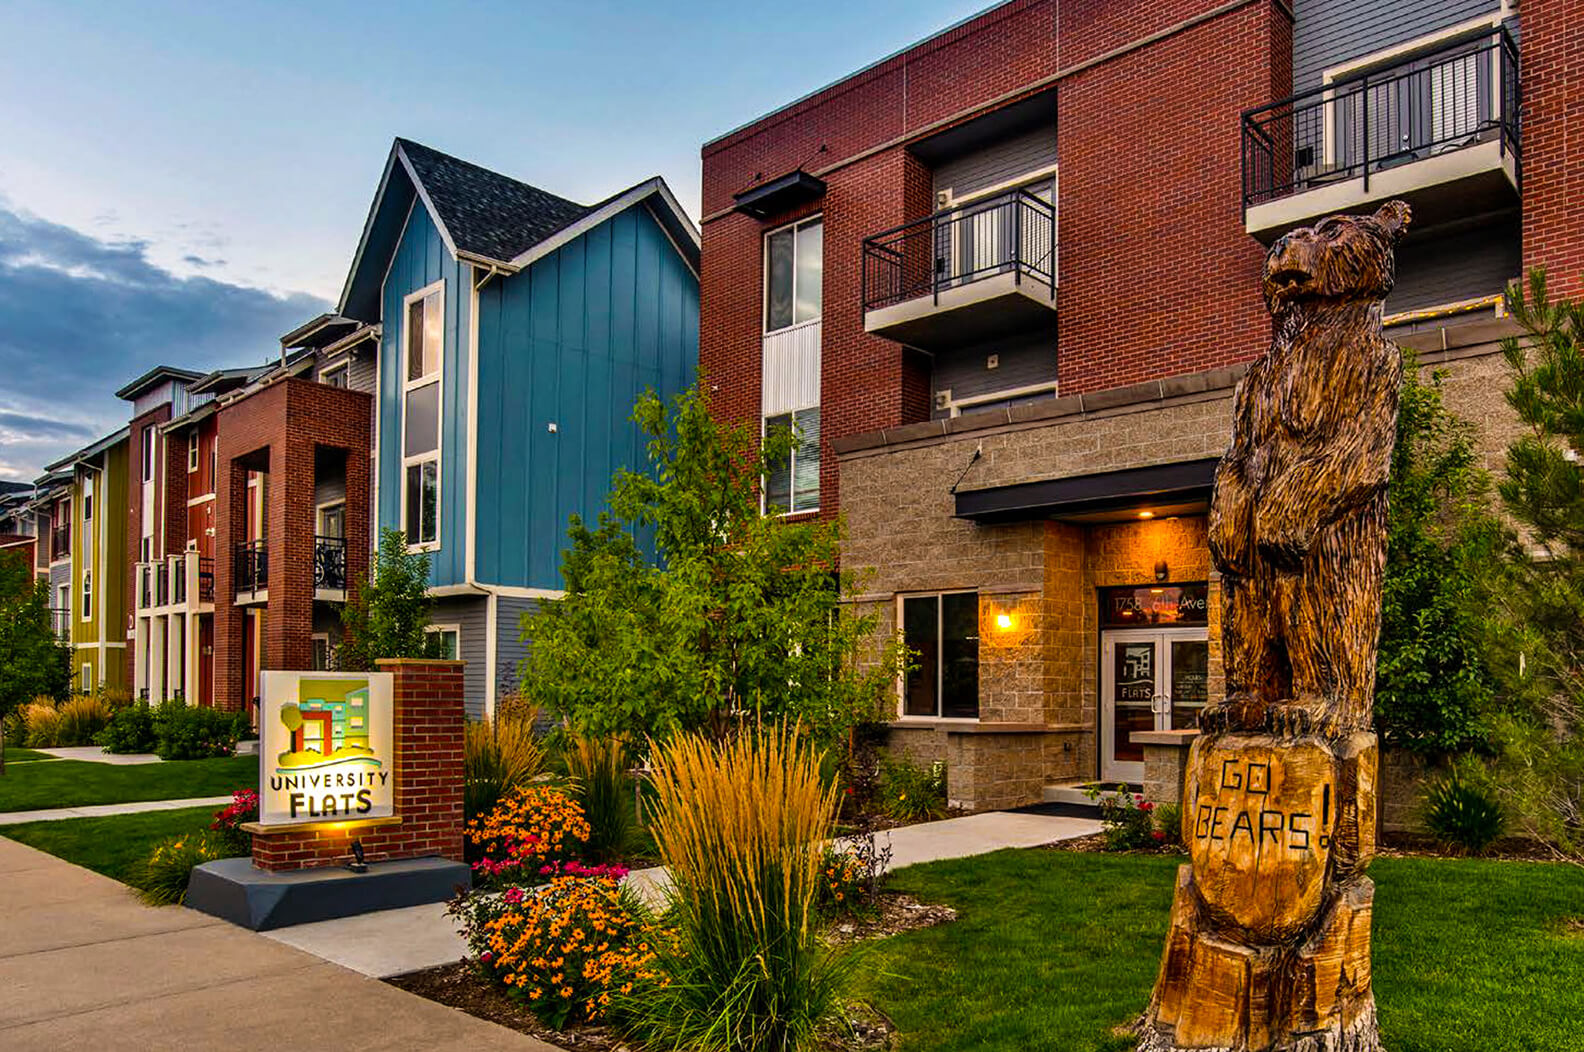 Latest Acquisition: University Flats in Greeley, Colorado